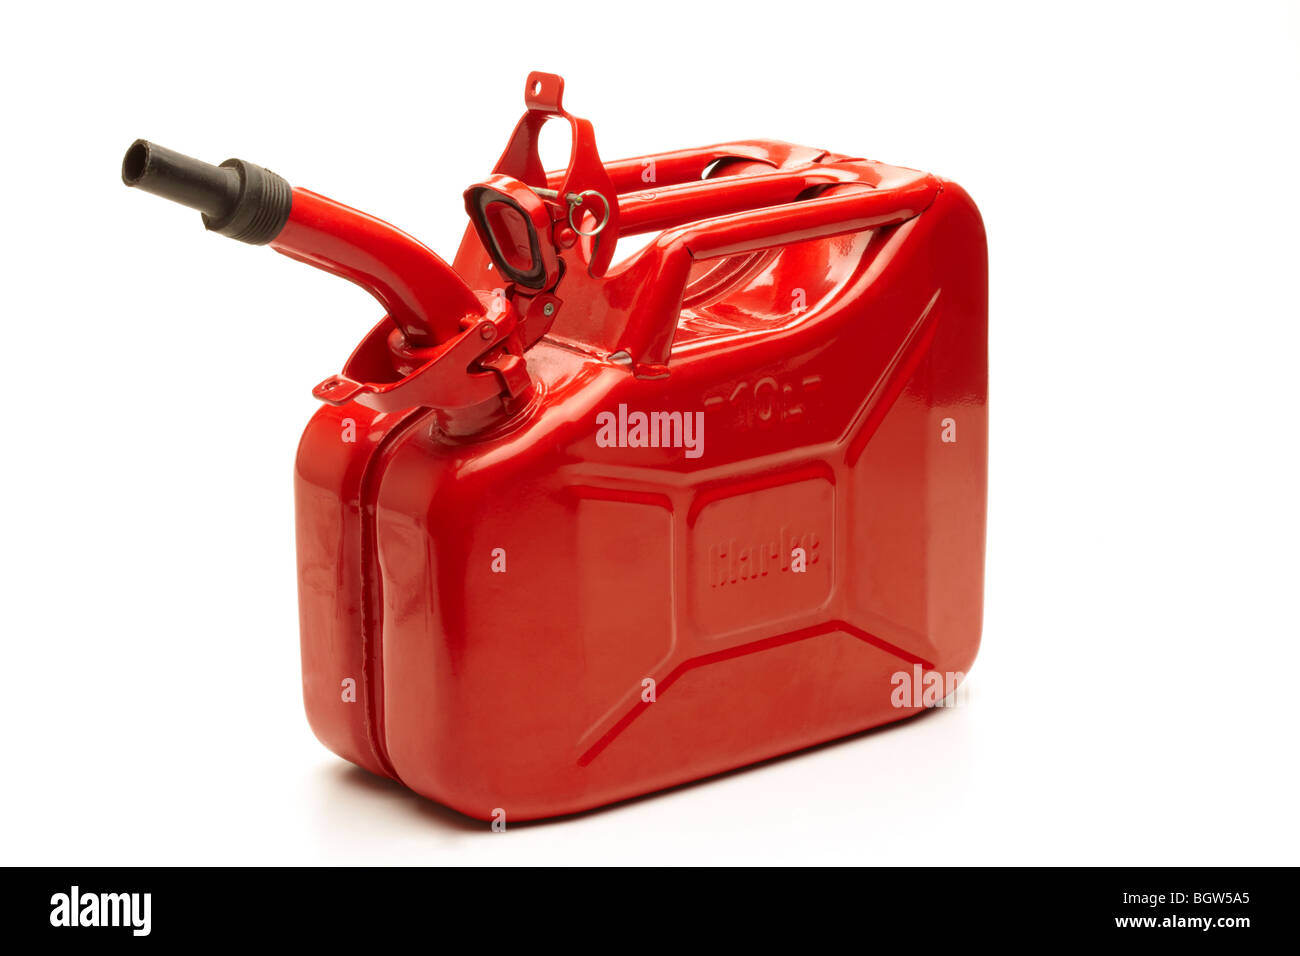 Red Petrol Can - Stock Image